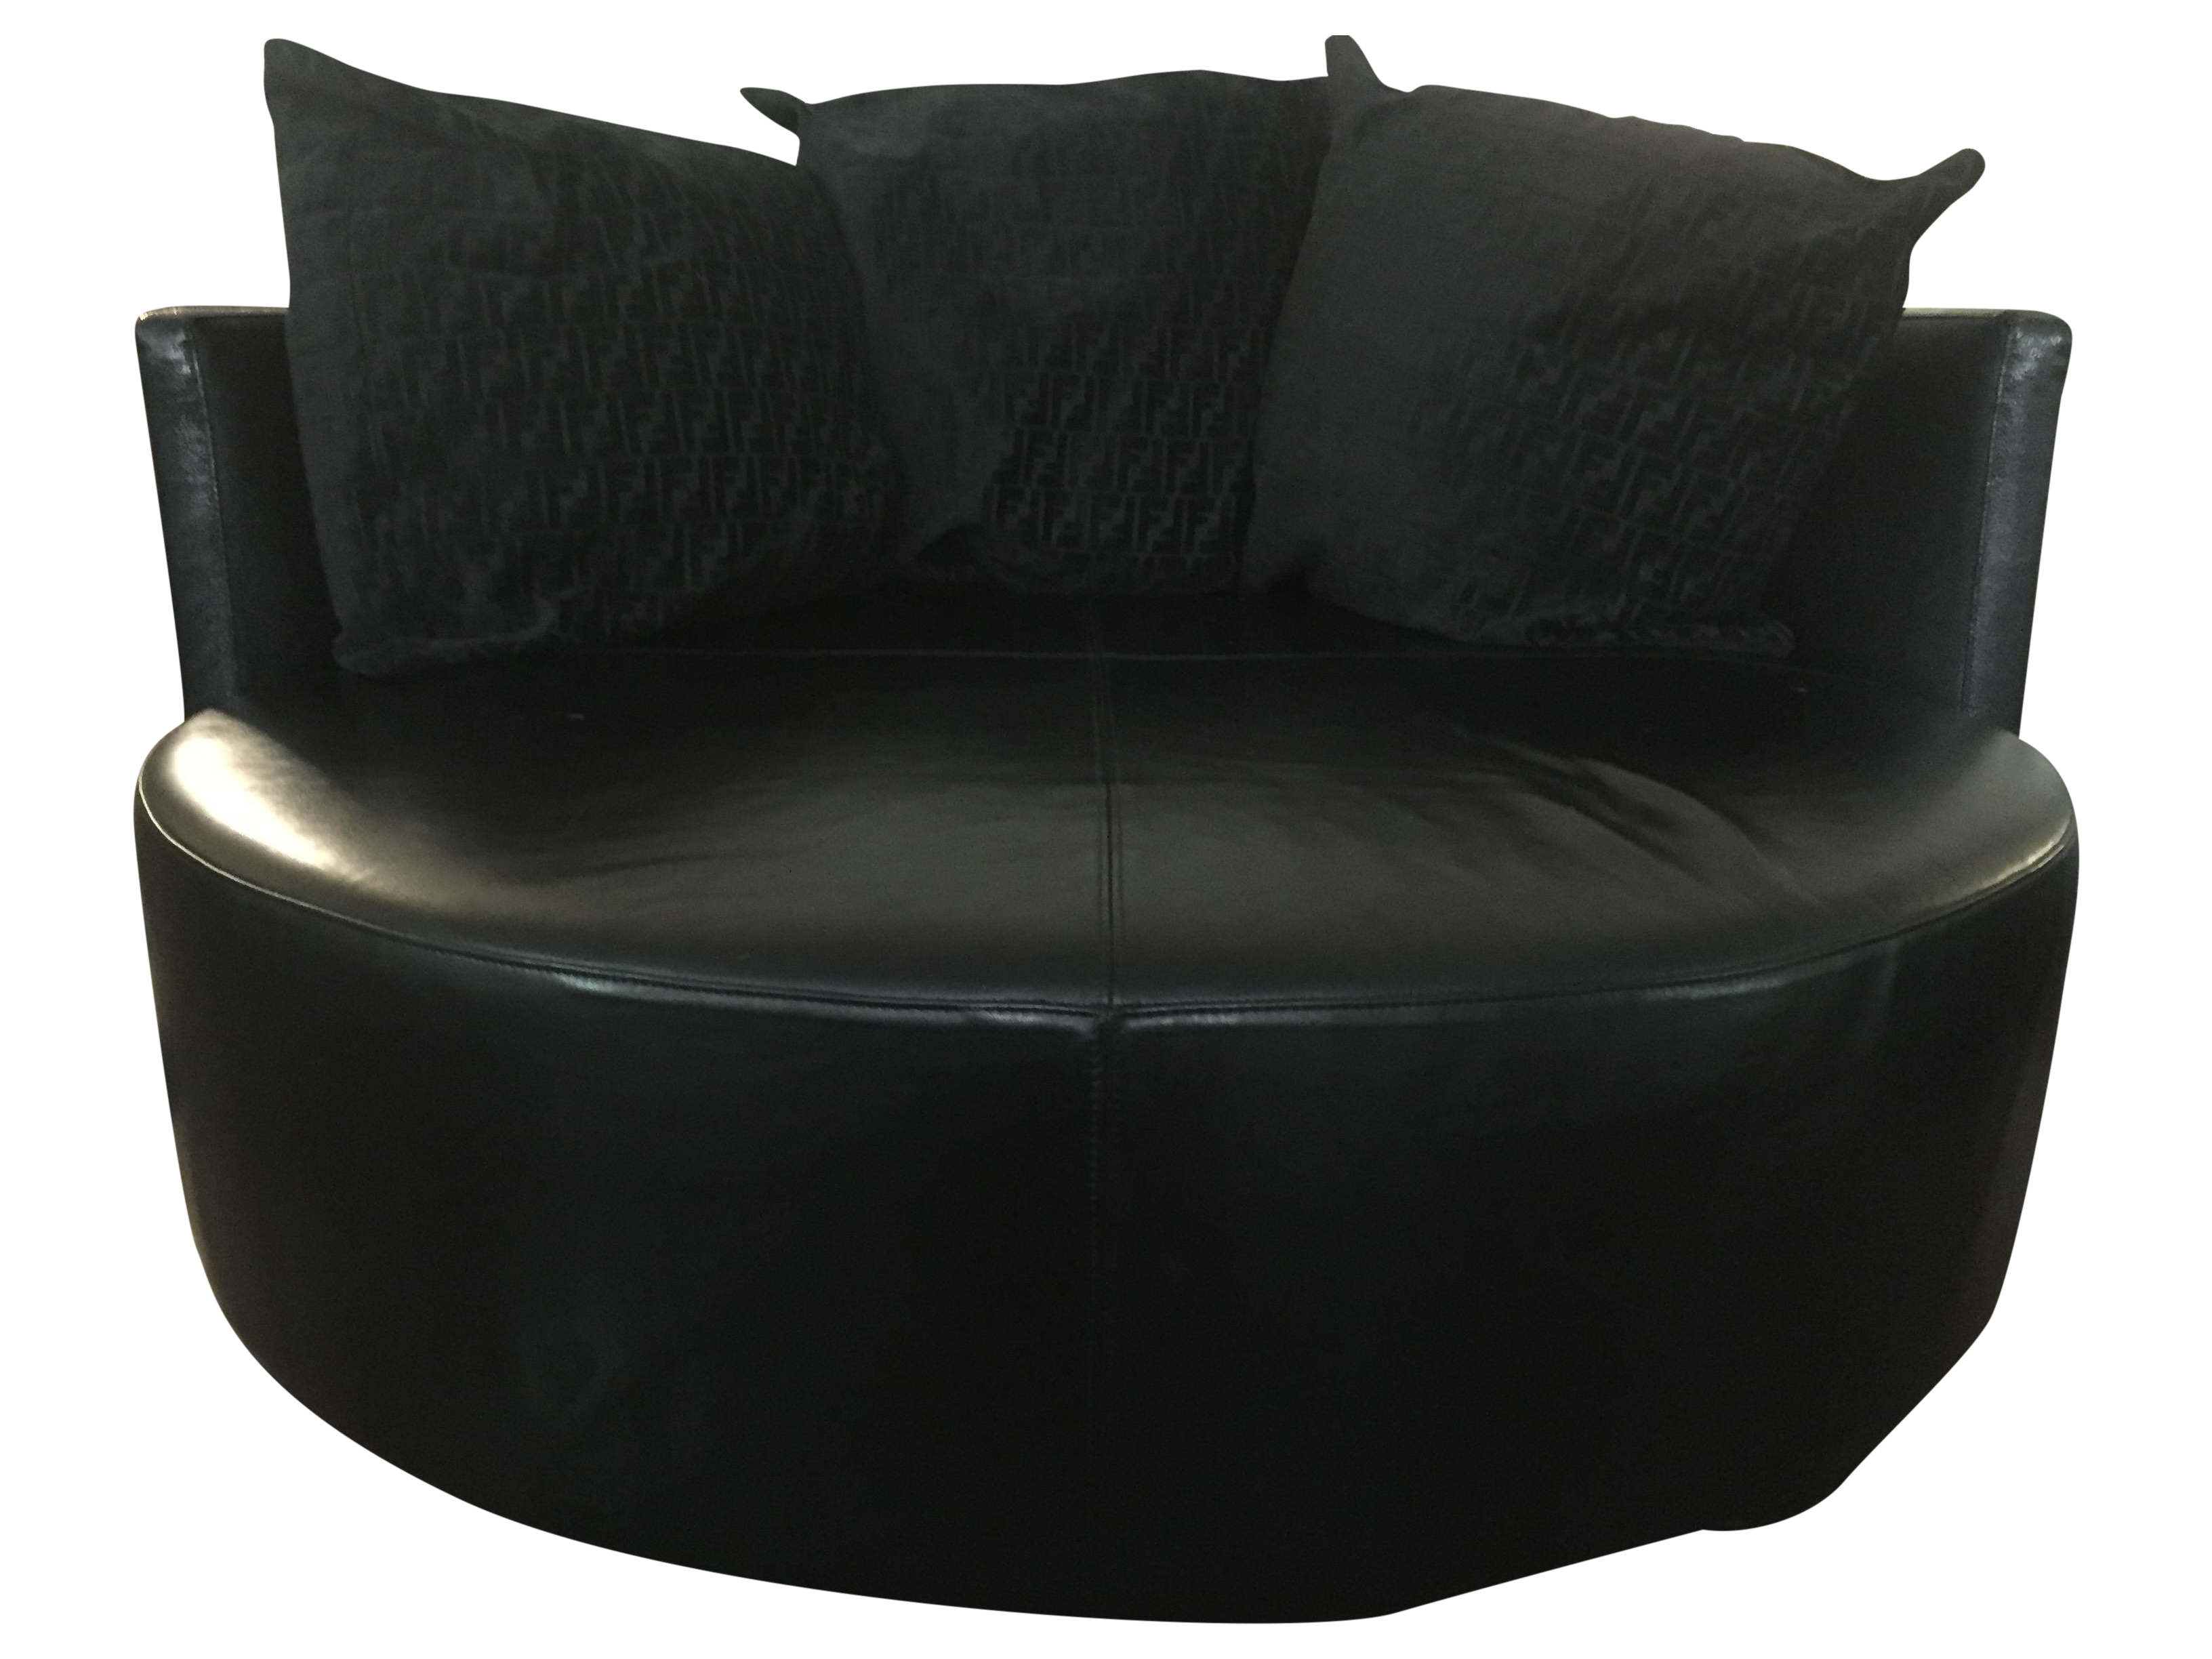 Fendi Casa Black Stingray Leather Circular Sofa Chairish